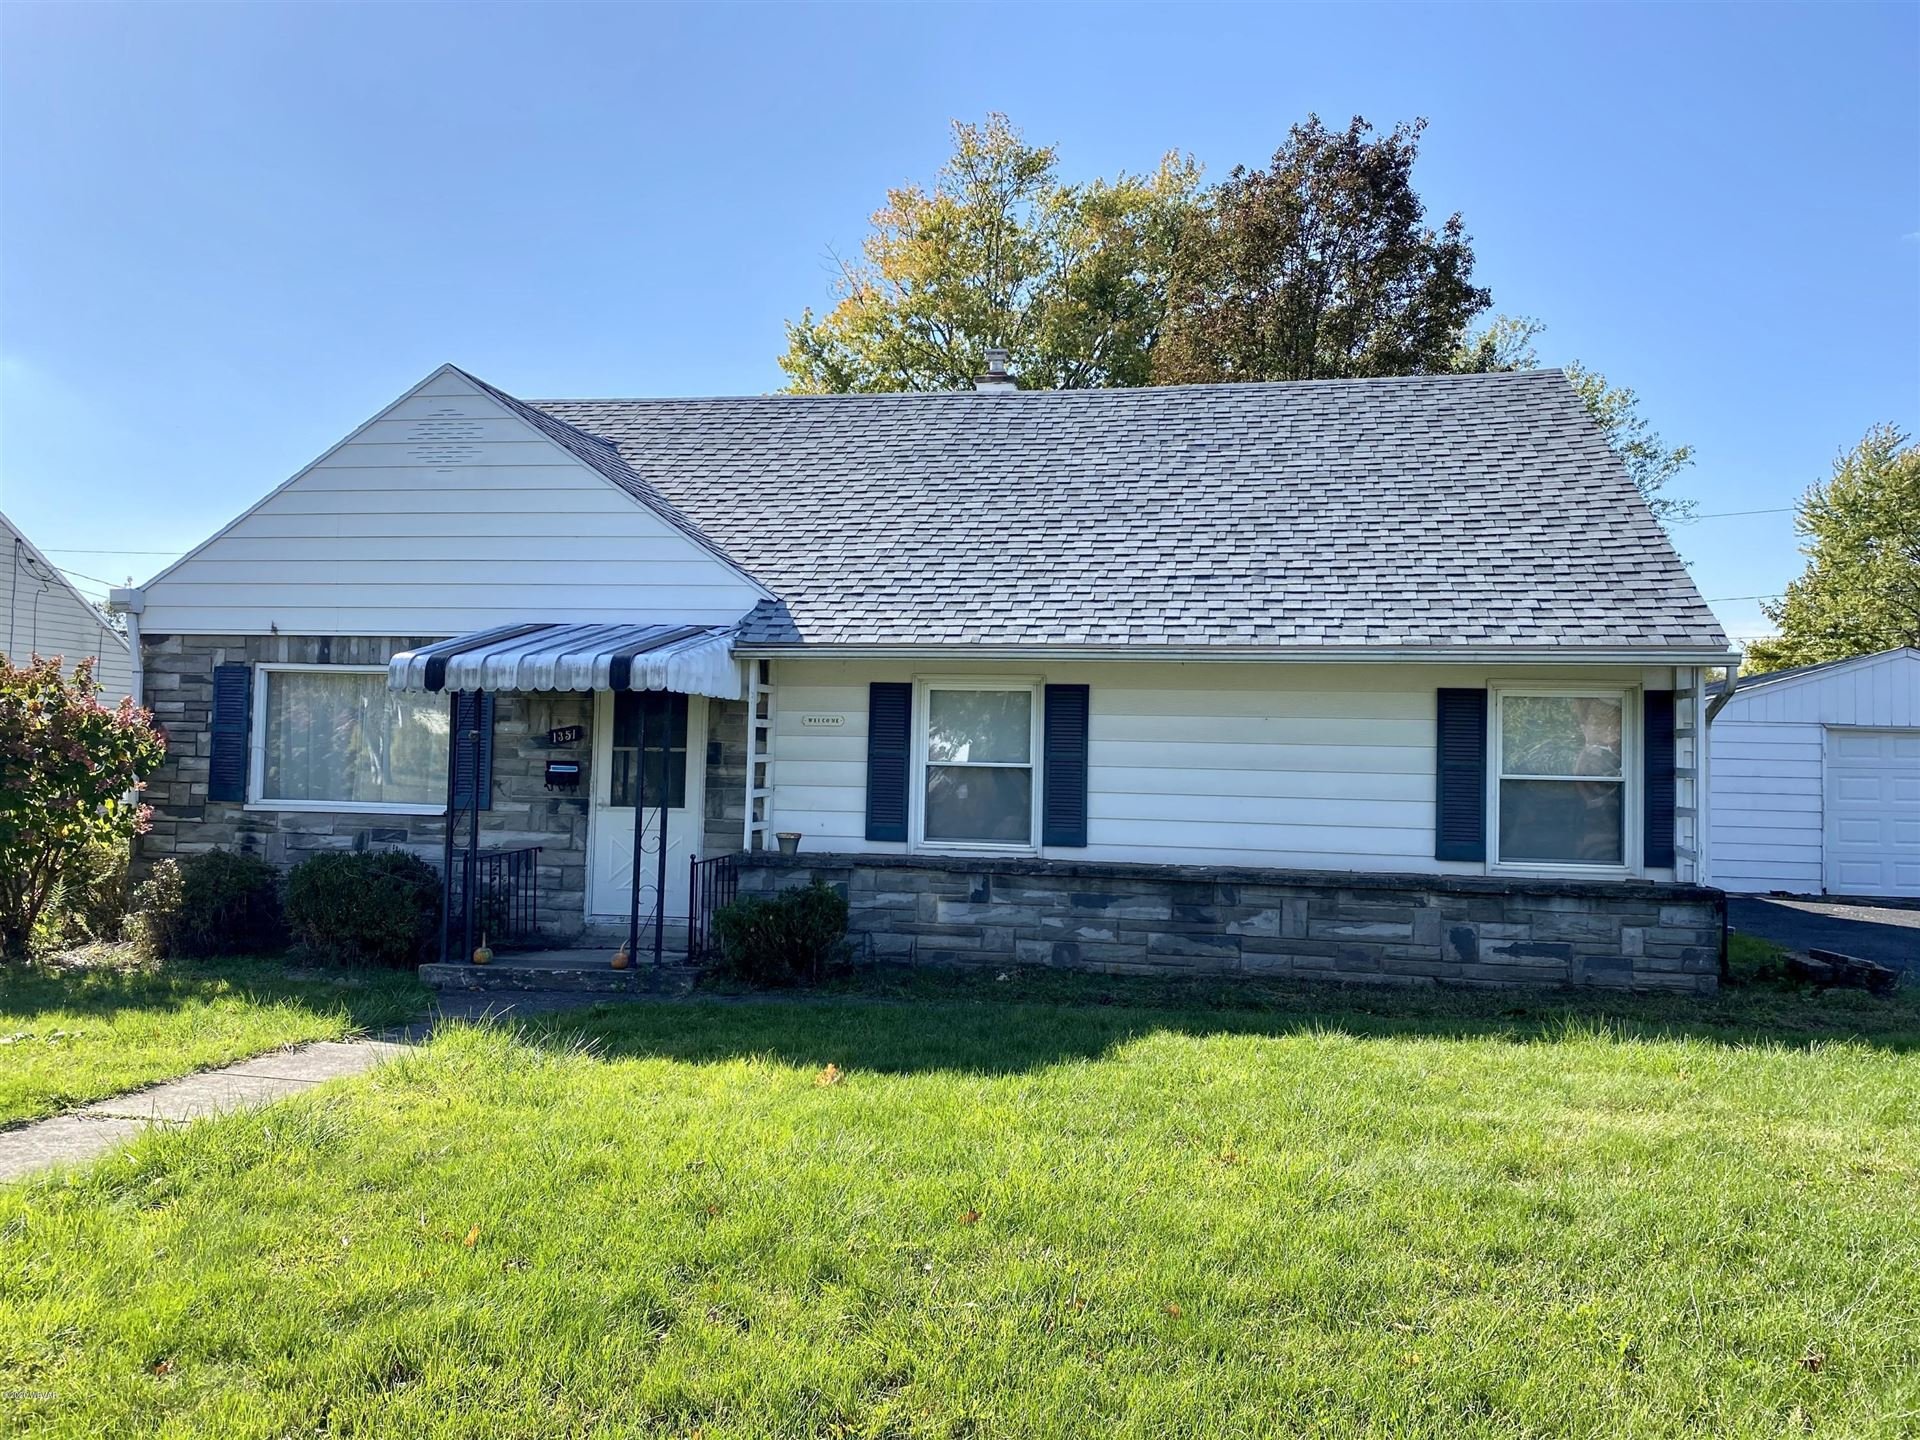 1351 PENNSYLVANIA AVENUE, Williamsport, PA 17701 - #: WB-91350